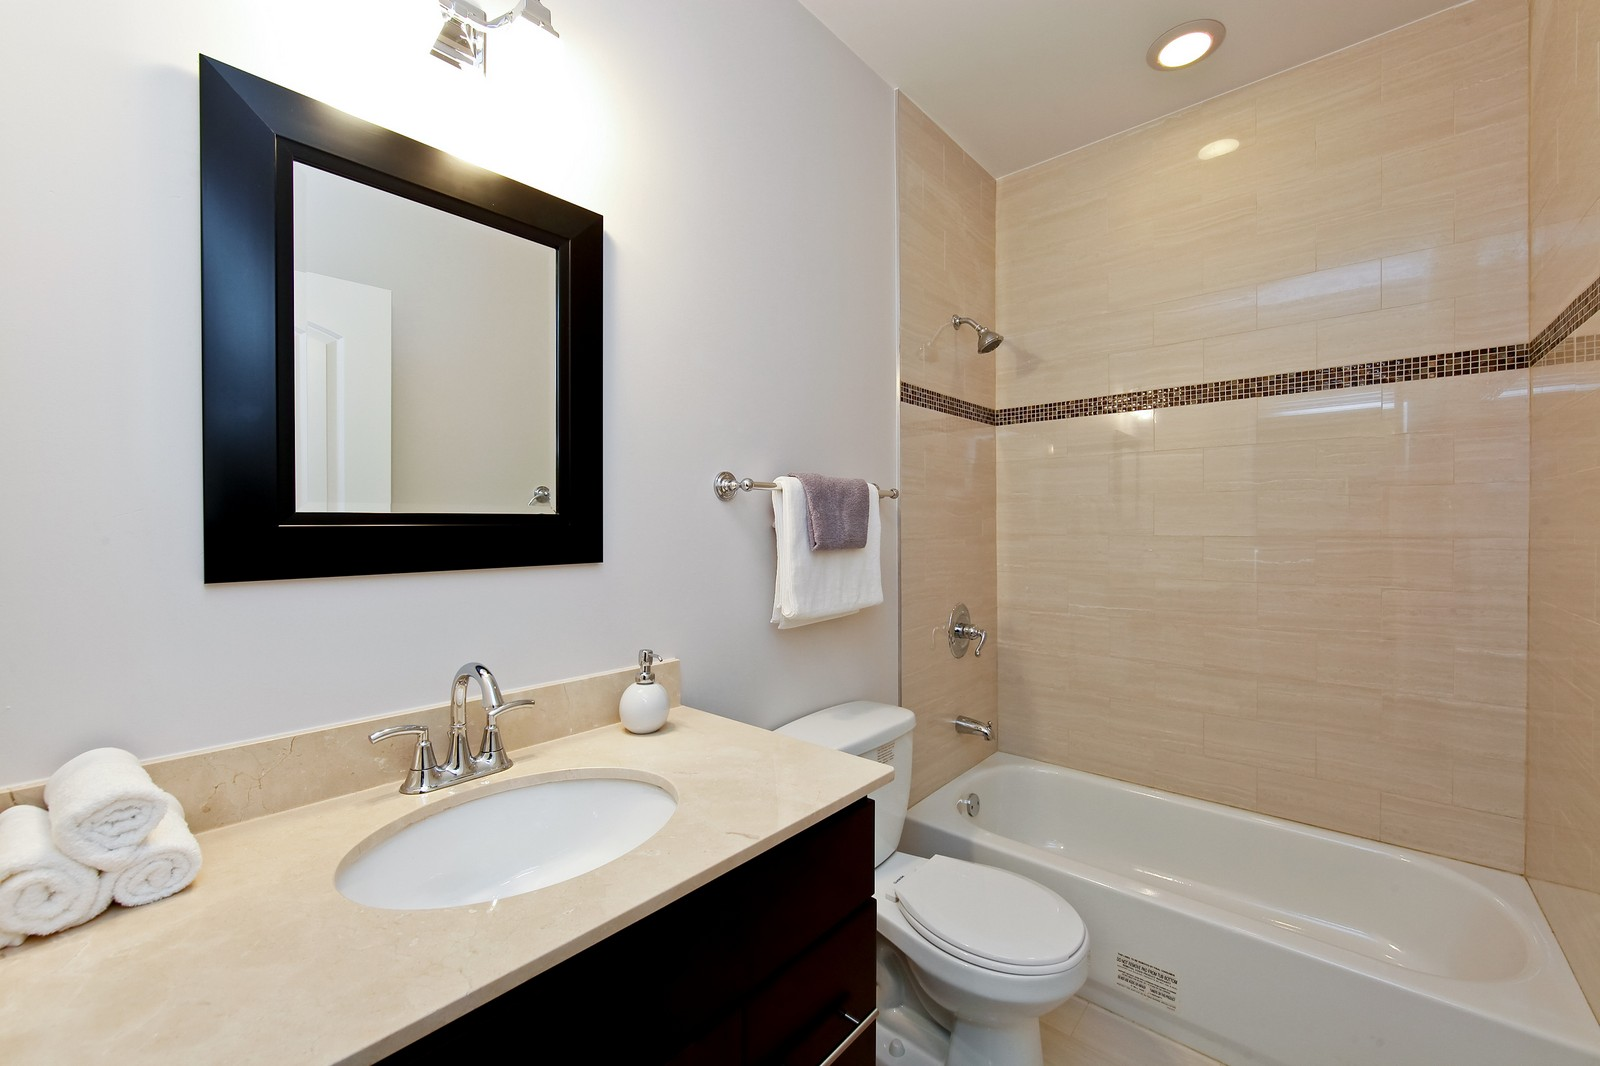 Real Estate Photography - 2422 W Bross, Chicago, IL, 60608 - Bathroom